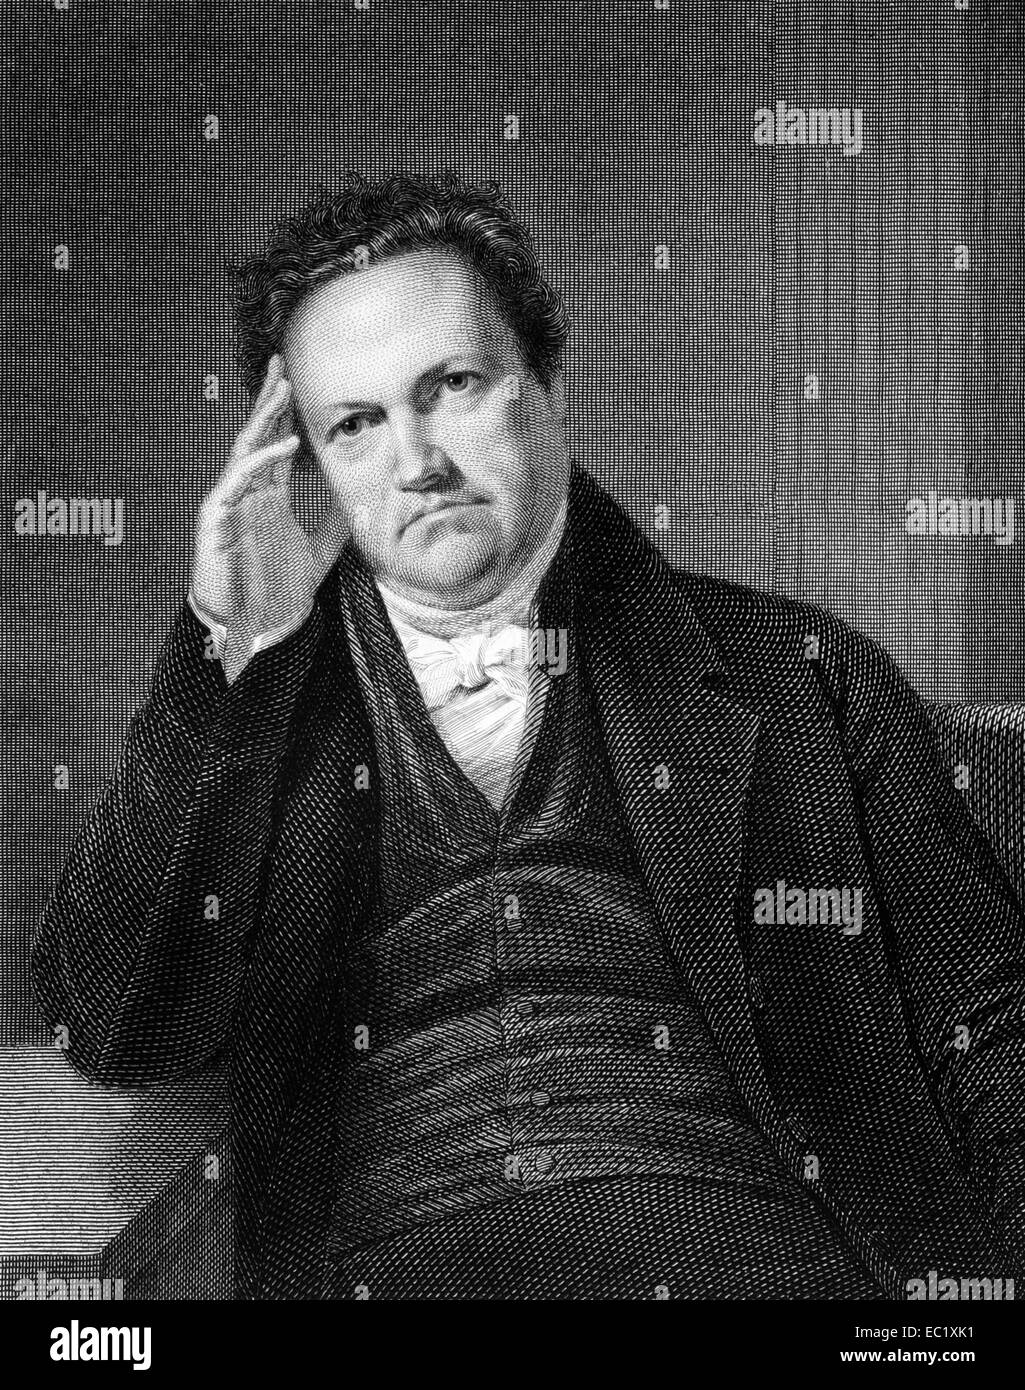 DeWitt Clinton (1769-1828) on engraving from 1835. American politician and naturalist. - Stock Image